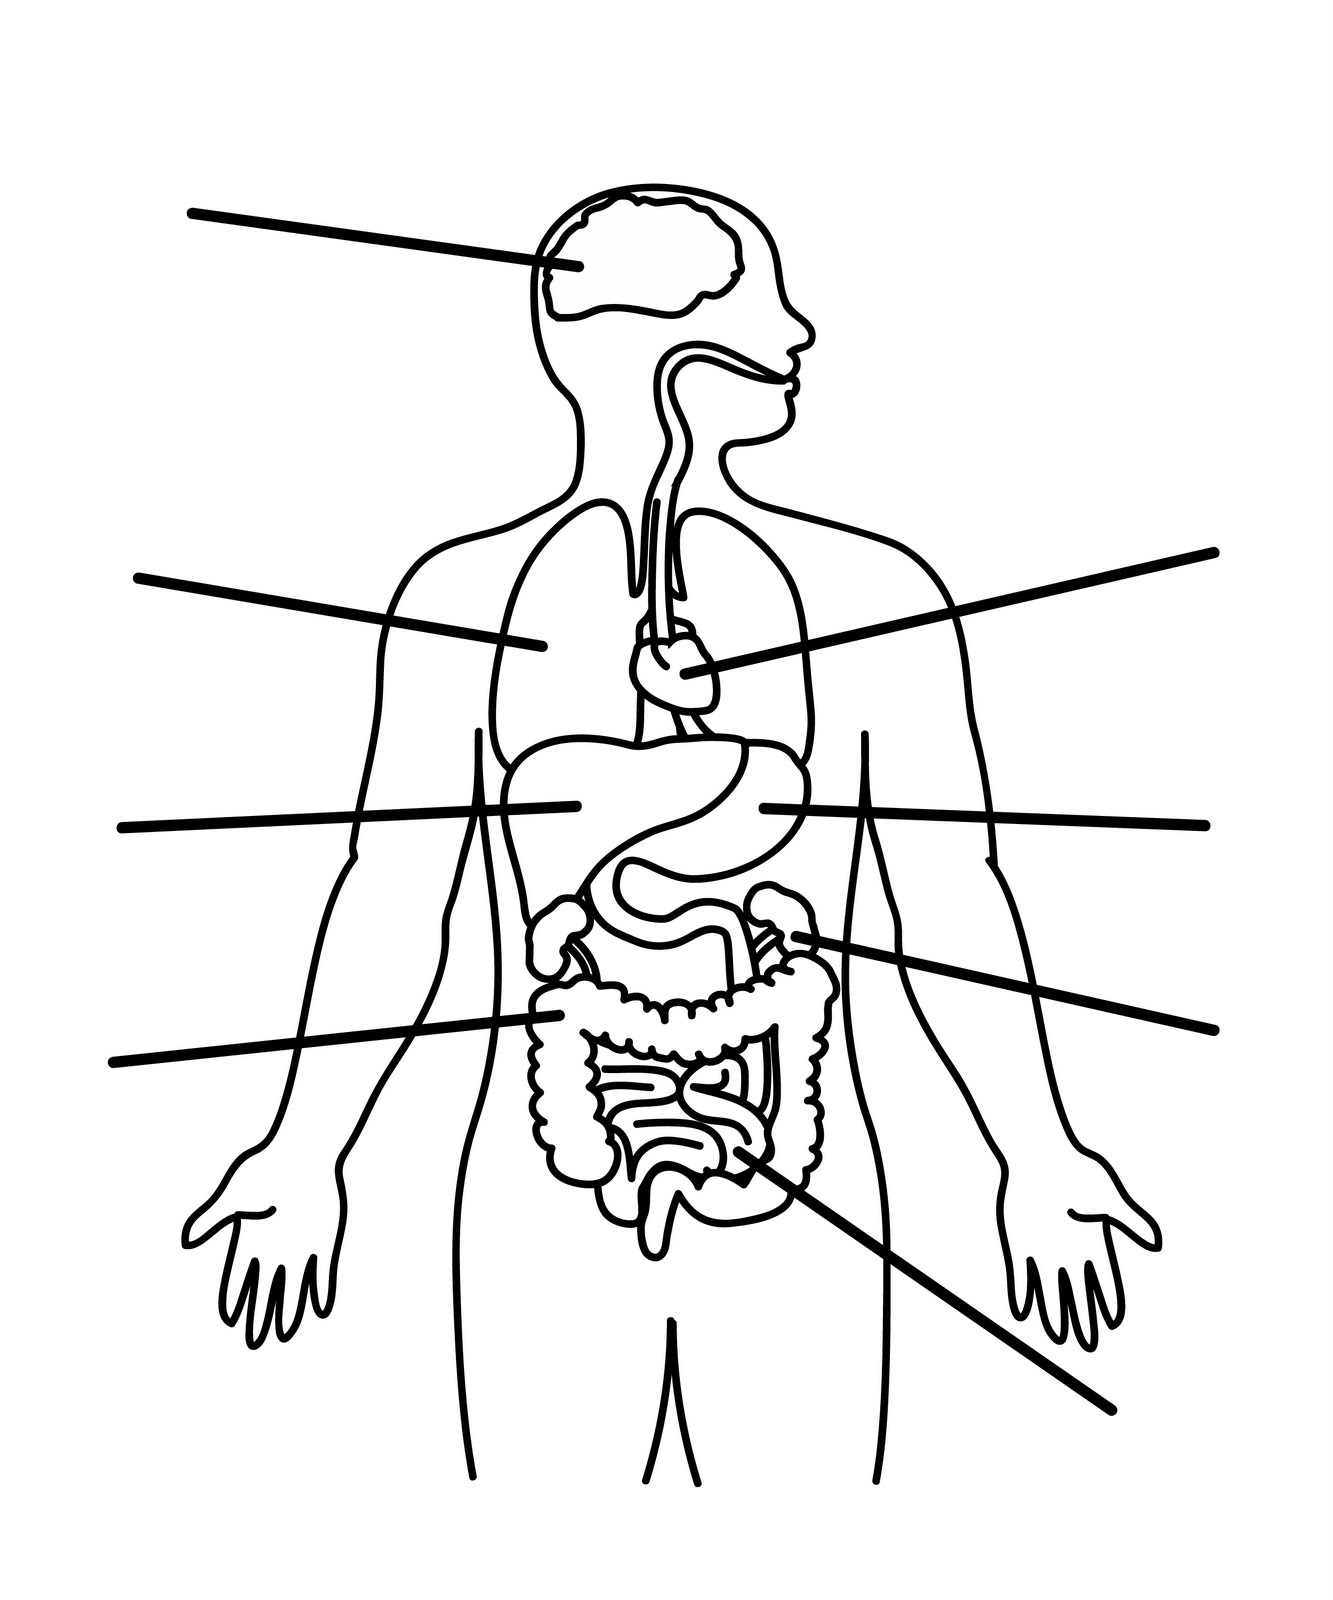 body outline diagram